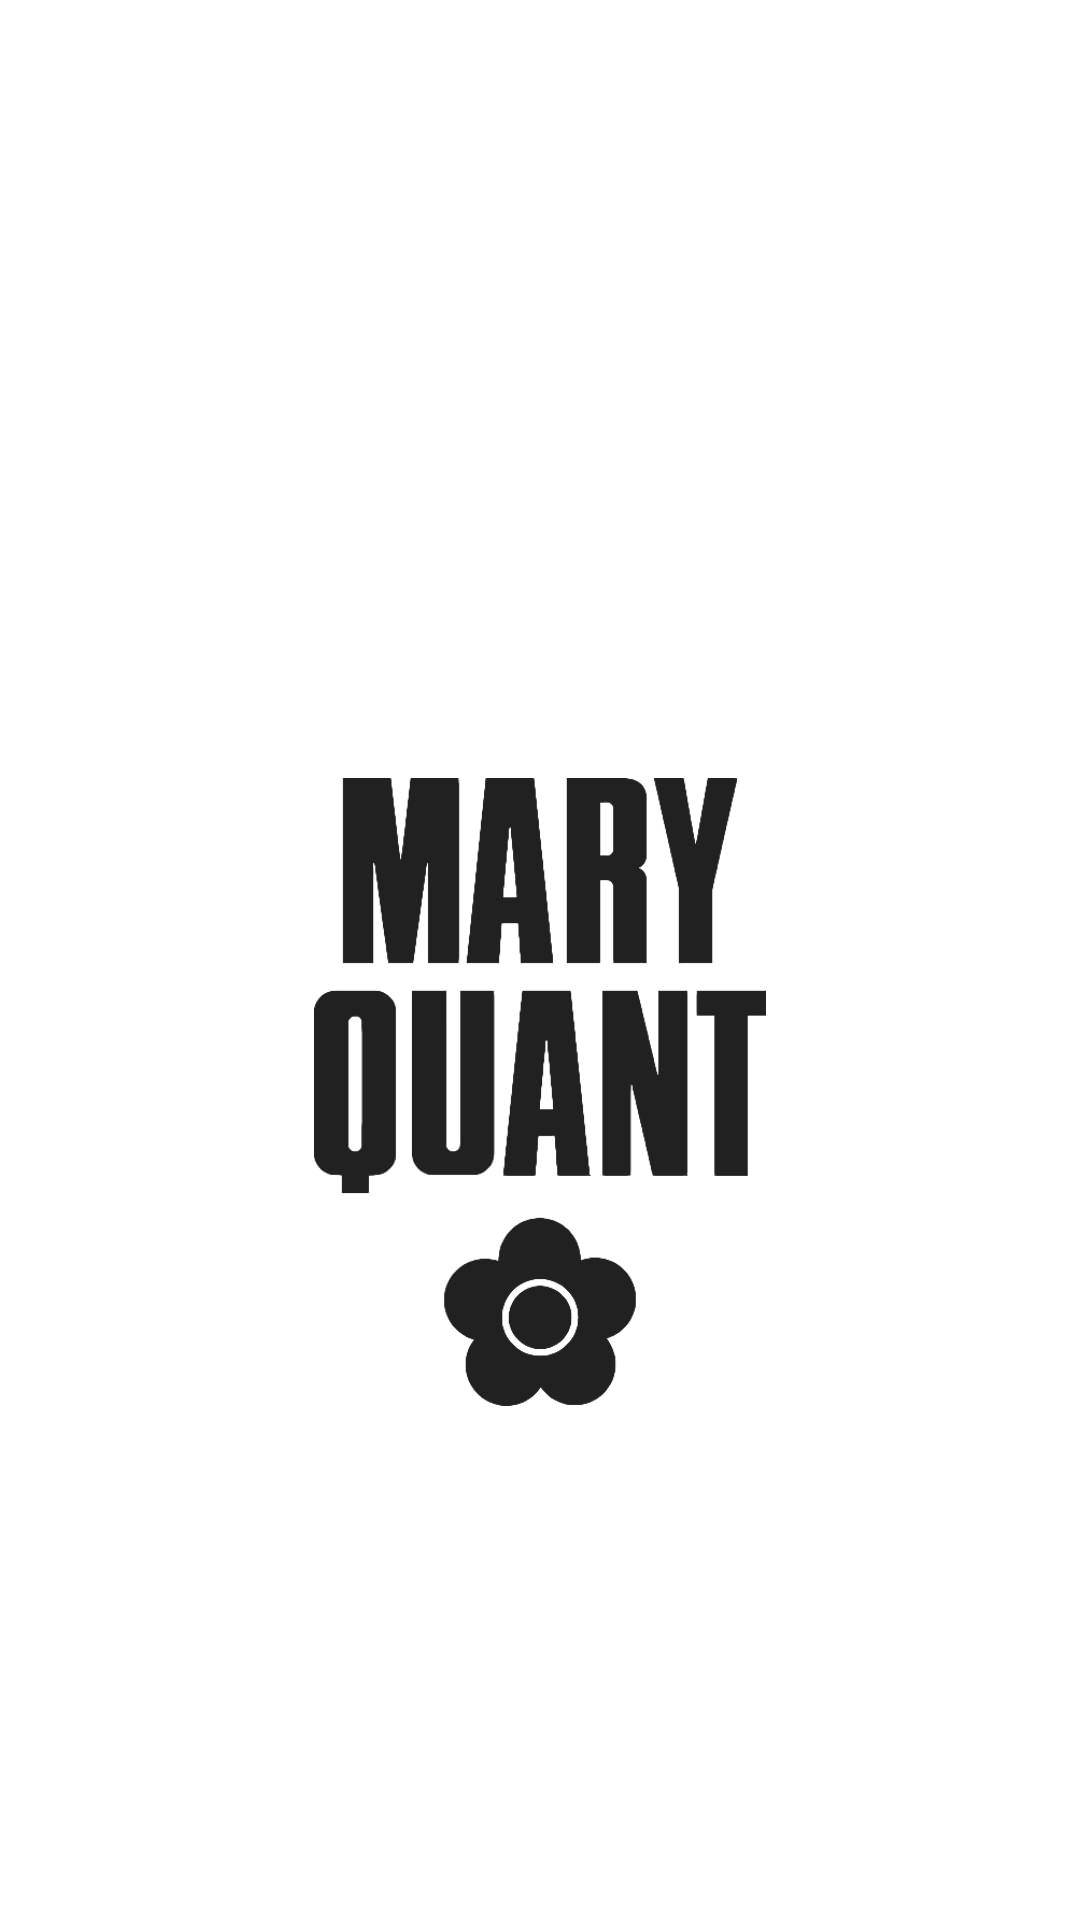 maryquant i15 - 20 MARY QUANT HQ Smartphone Wallpaper Collection